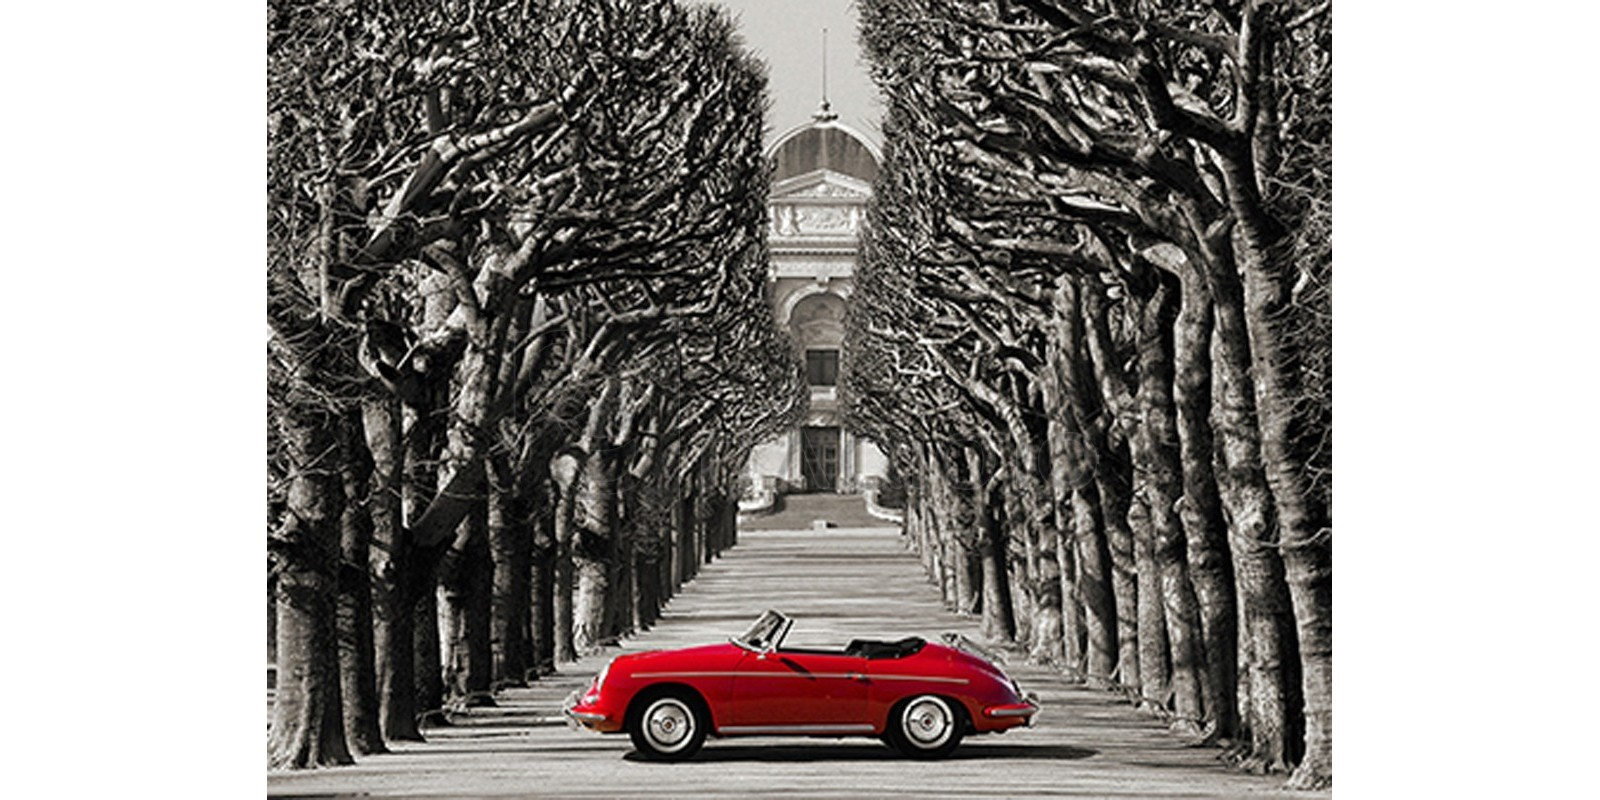 Gasoline Images - Roadster in tree lined road, Paris